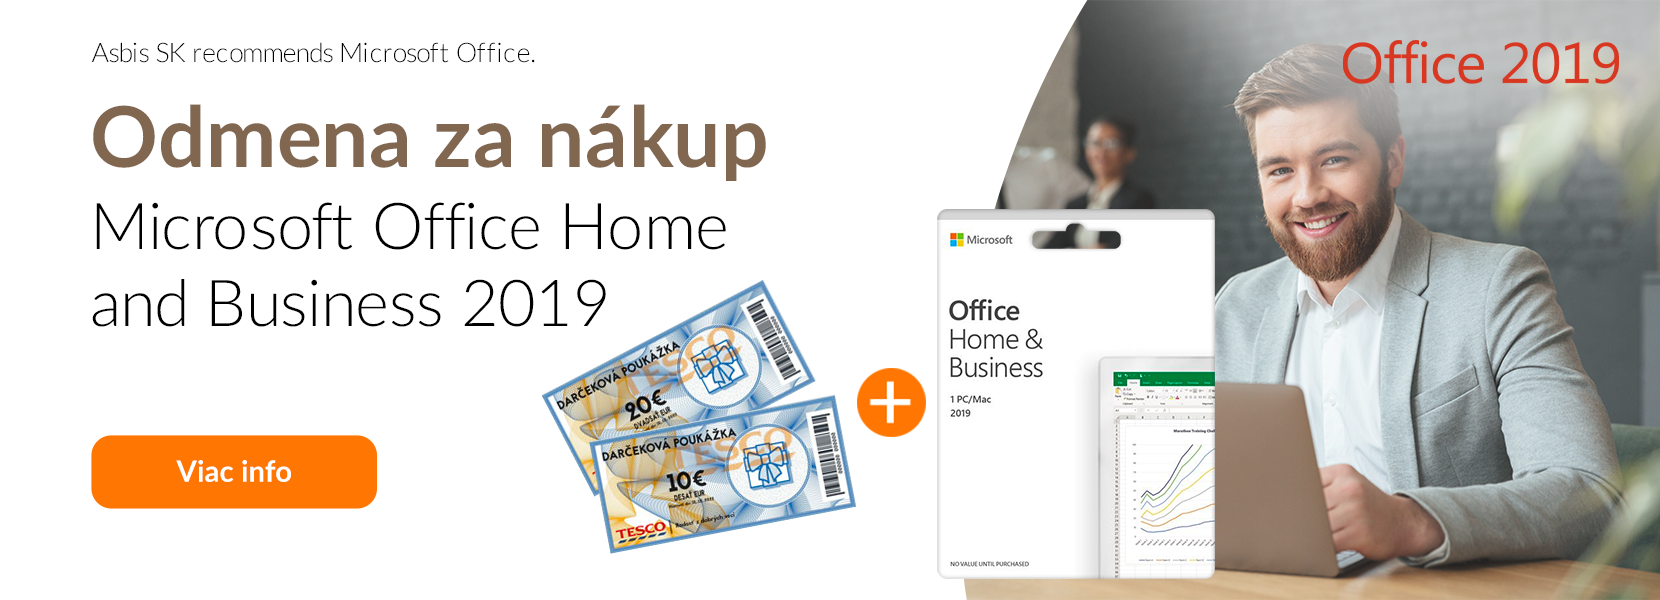 Odmena za nákup Microsoft Office Home and Business 2019